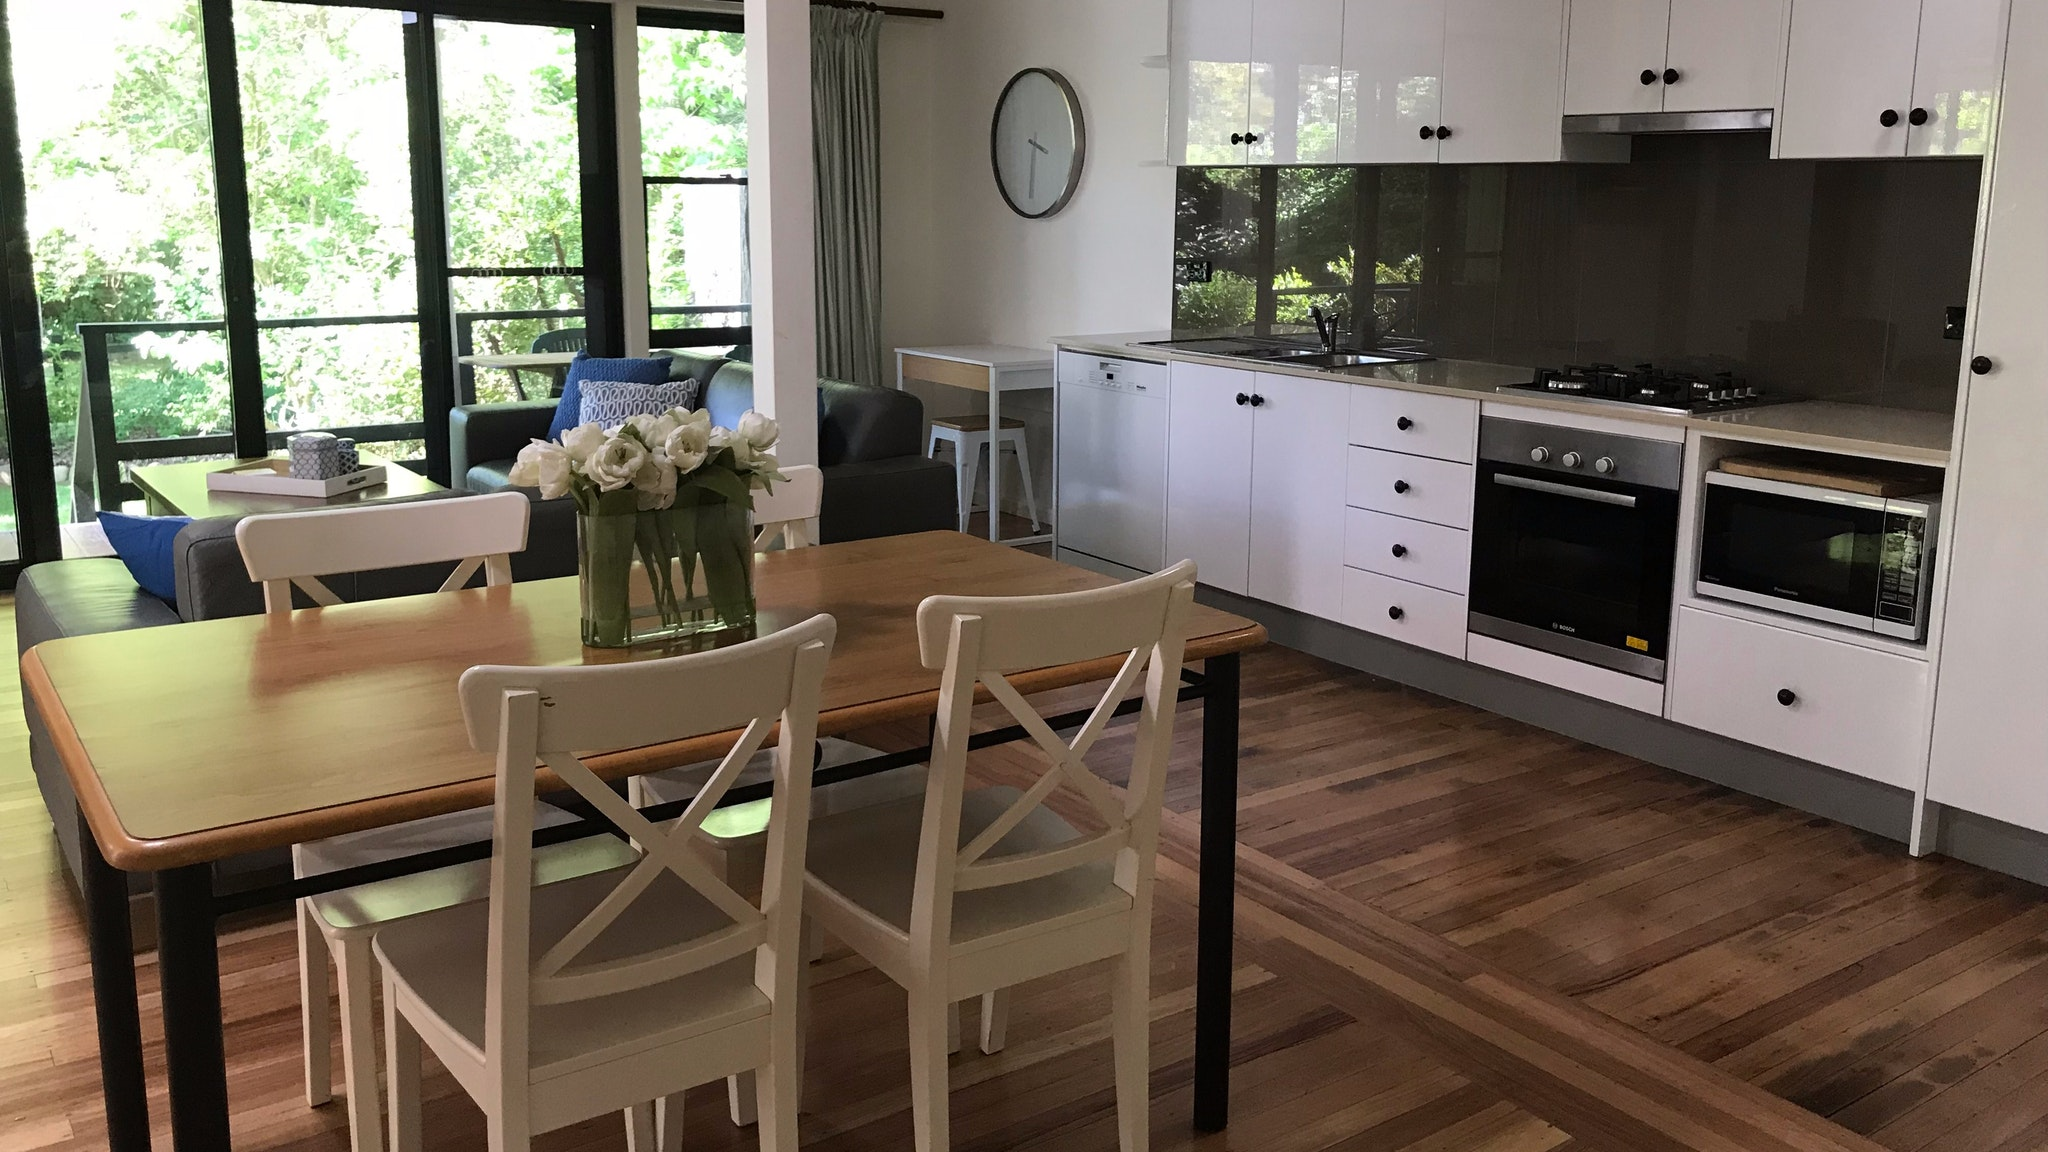 Open plan living makes for a relaxing holiday